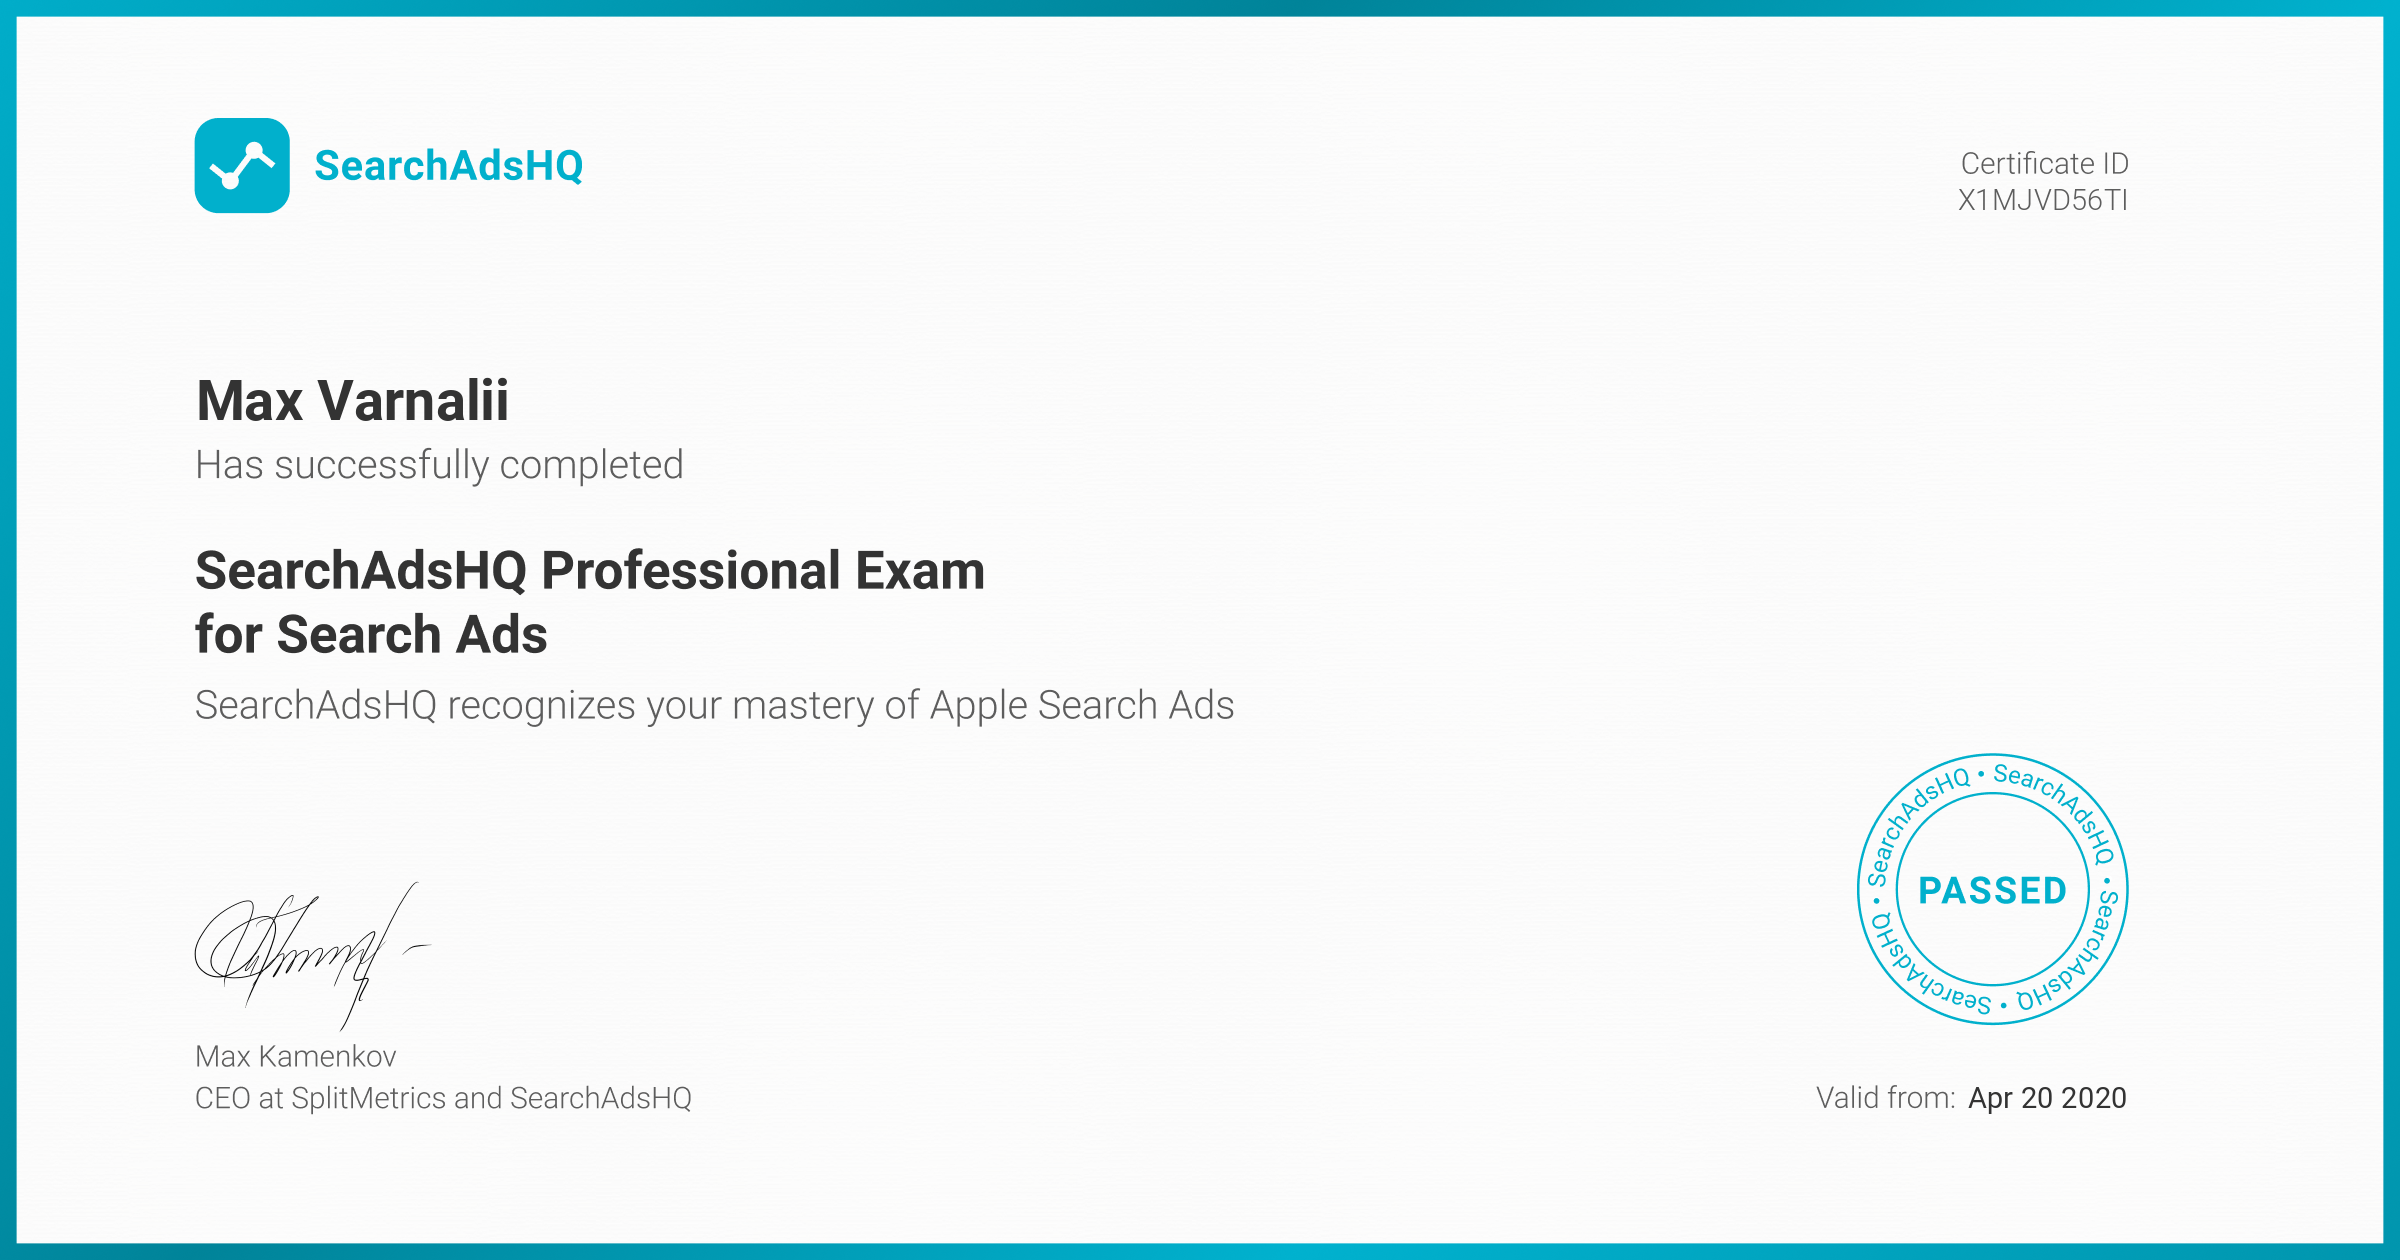 Certificate for Max Varnalii | SearchAdsHQ Professional Exam for Search Ads